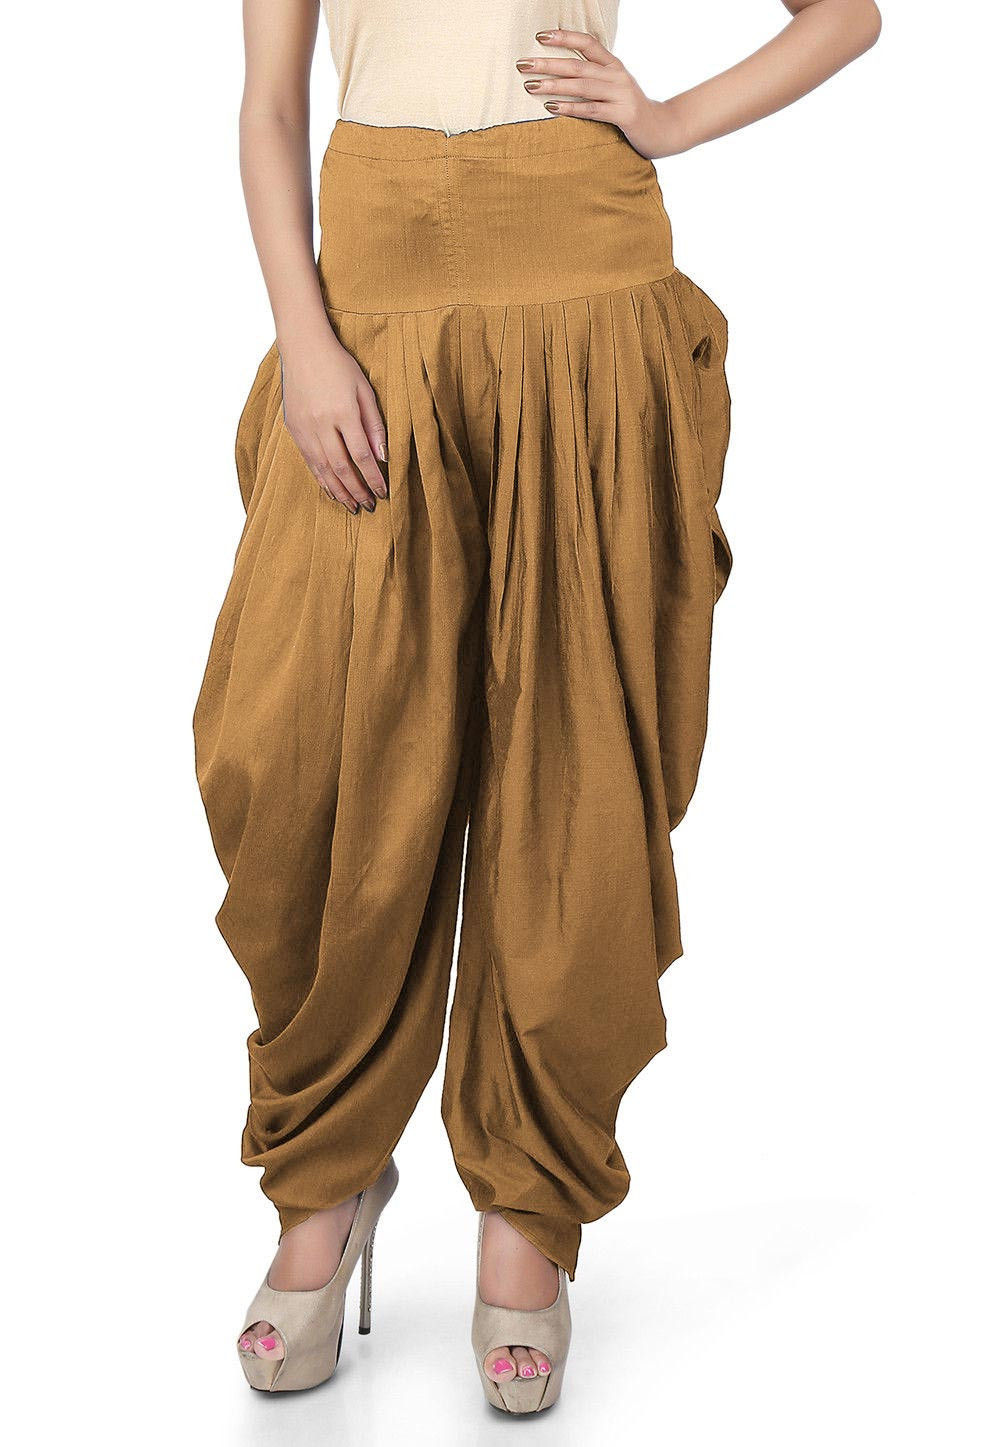 Solid Color Cotton Silk Salwars in Beige